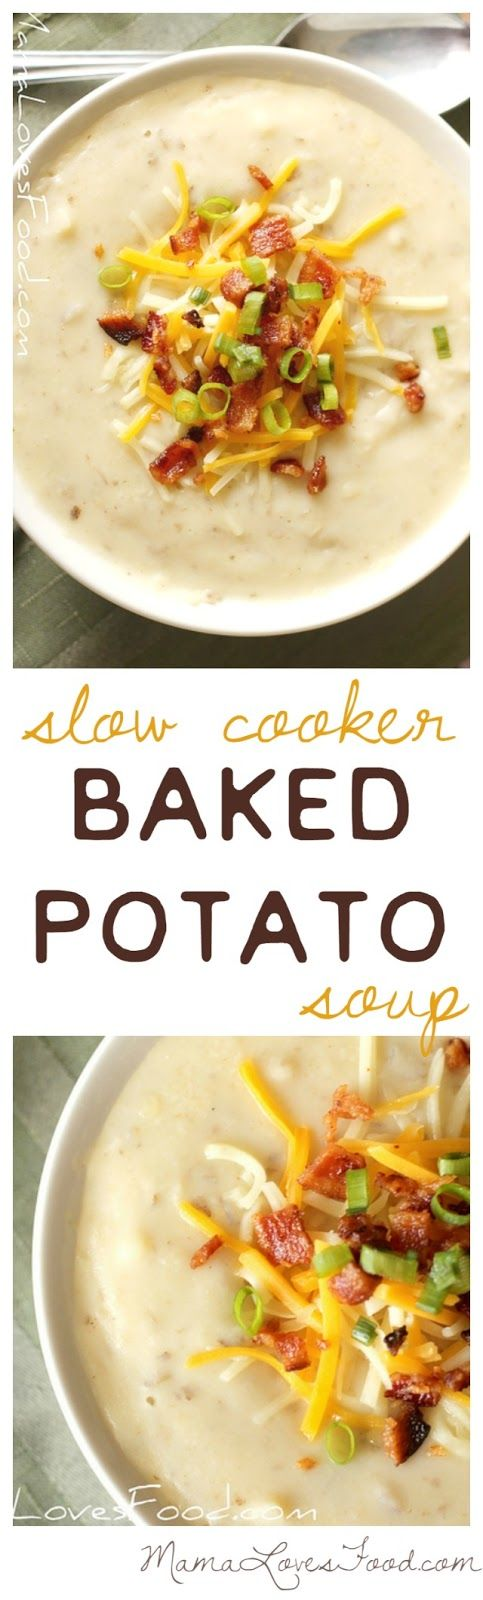 Slow Cooker Baked Potato Soup - SO GOOD!  Hubby asks for this allll the time :-D